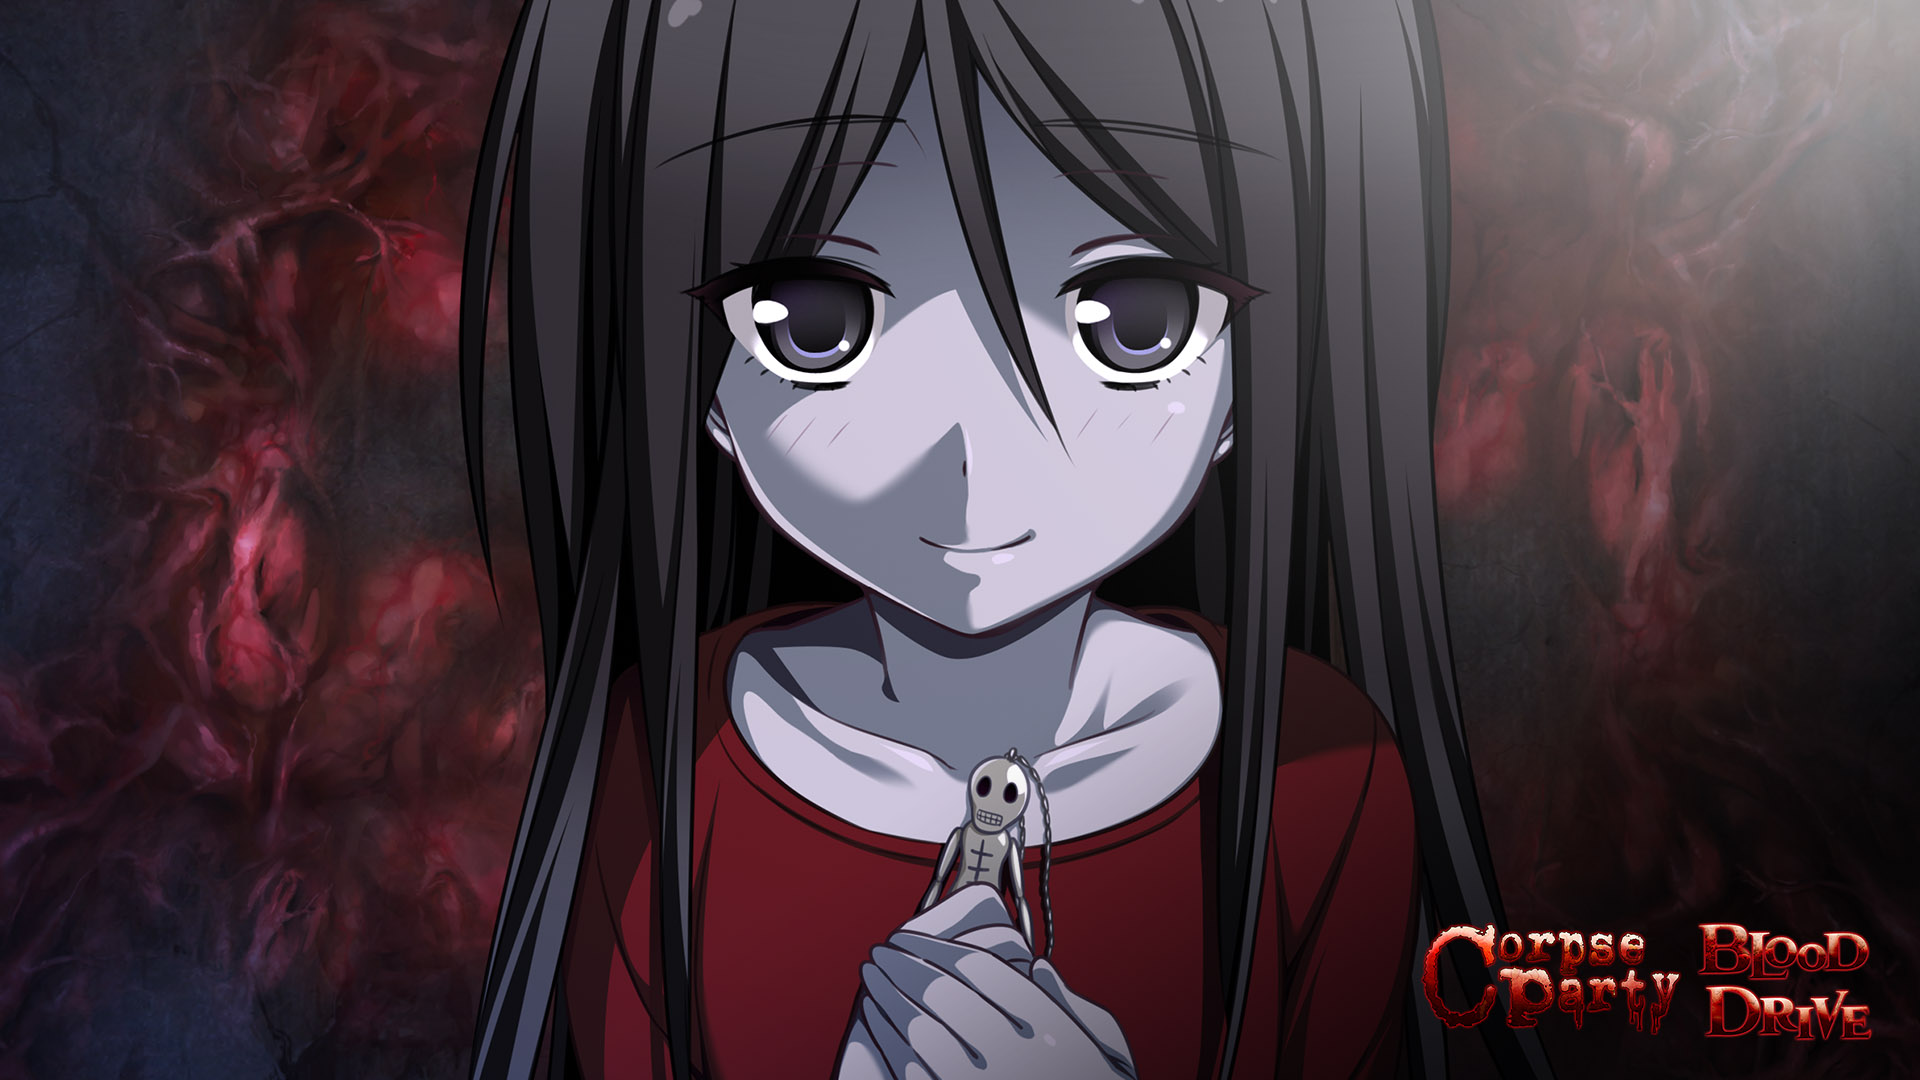 Showcase Corpse Party Blood Drive